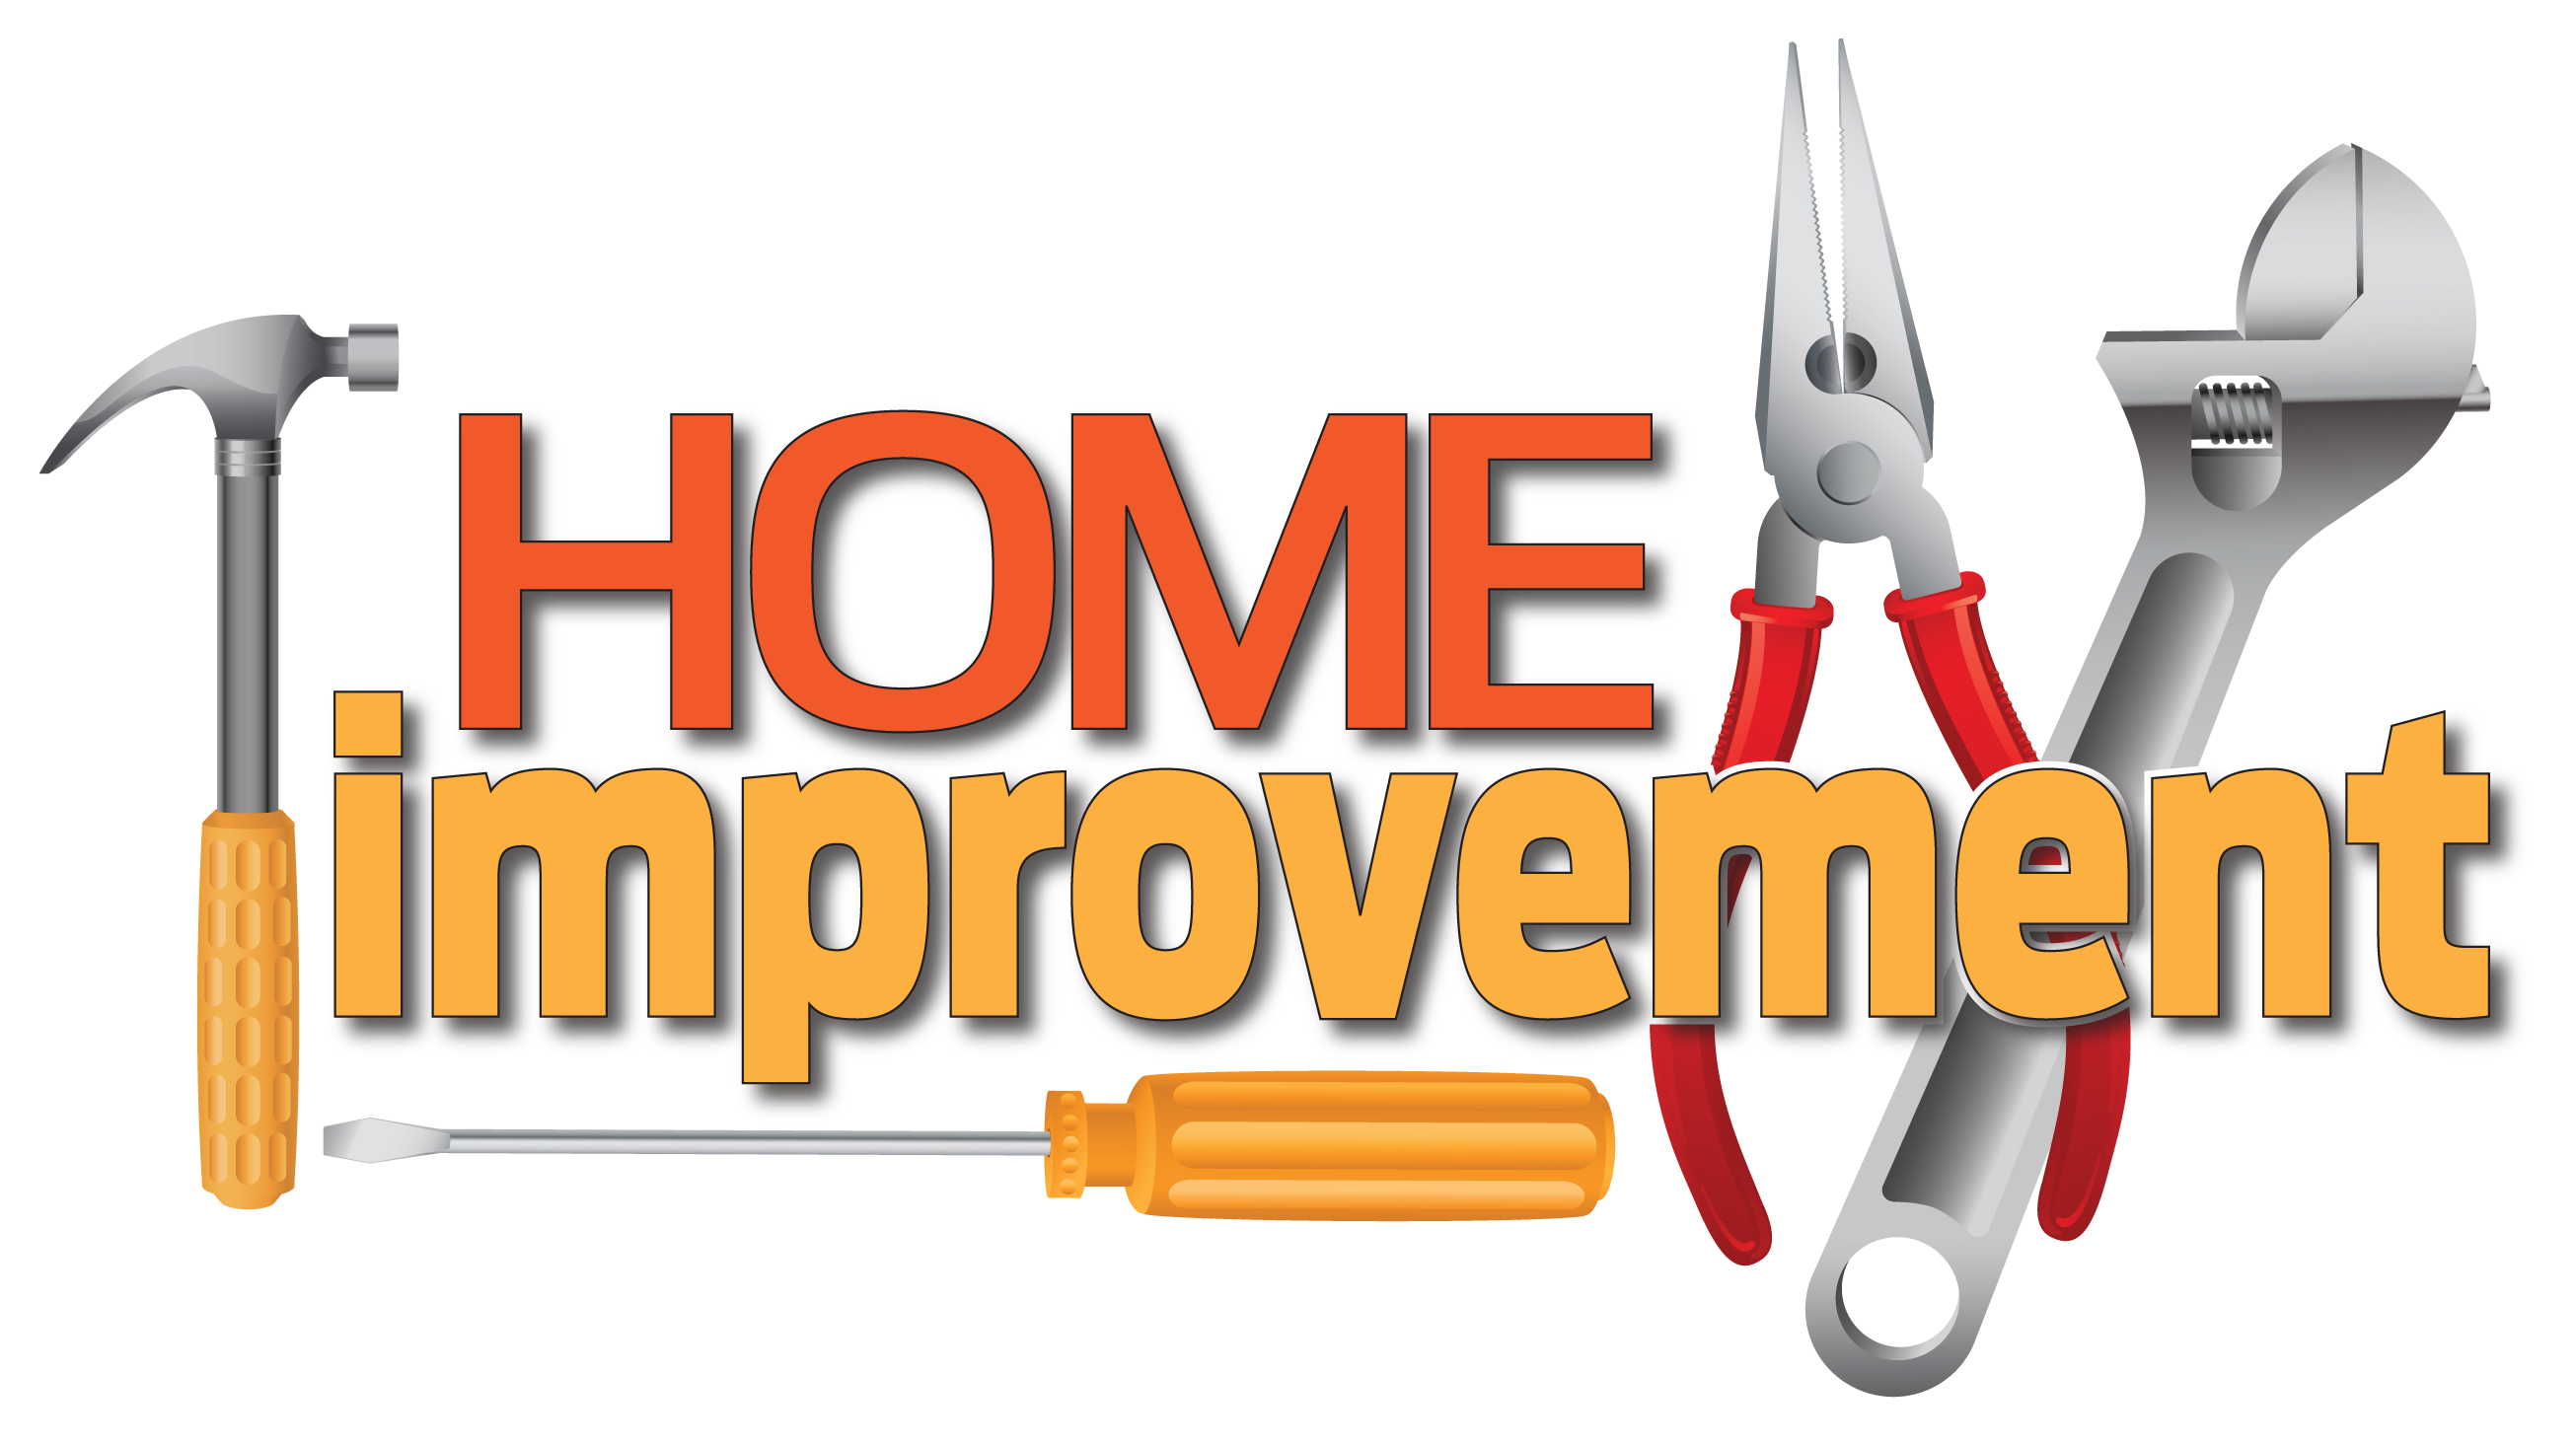 5 Home Improvements That Require A Crane